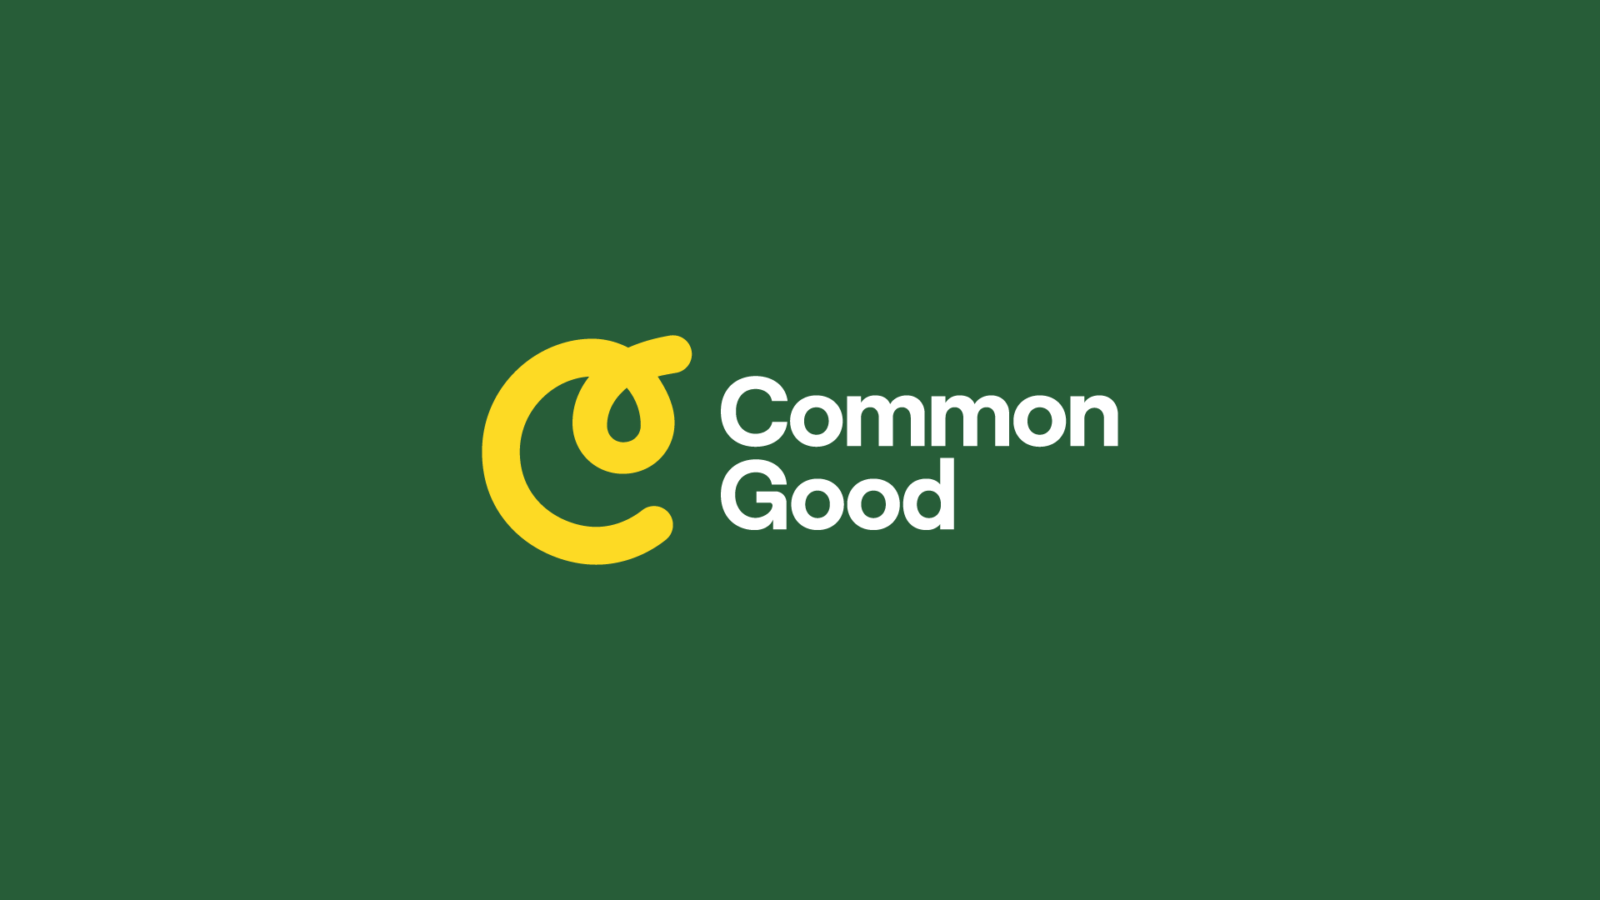 Common Good Logo in yellow on green